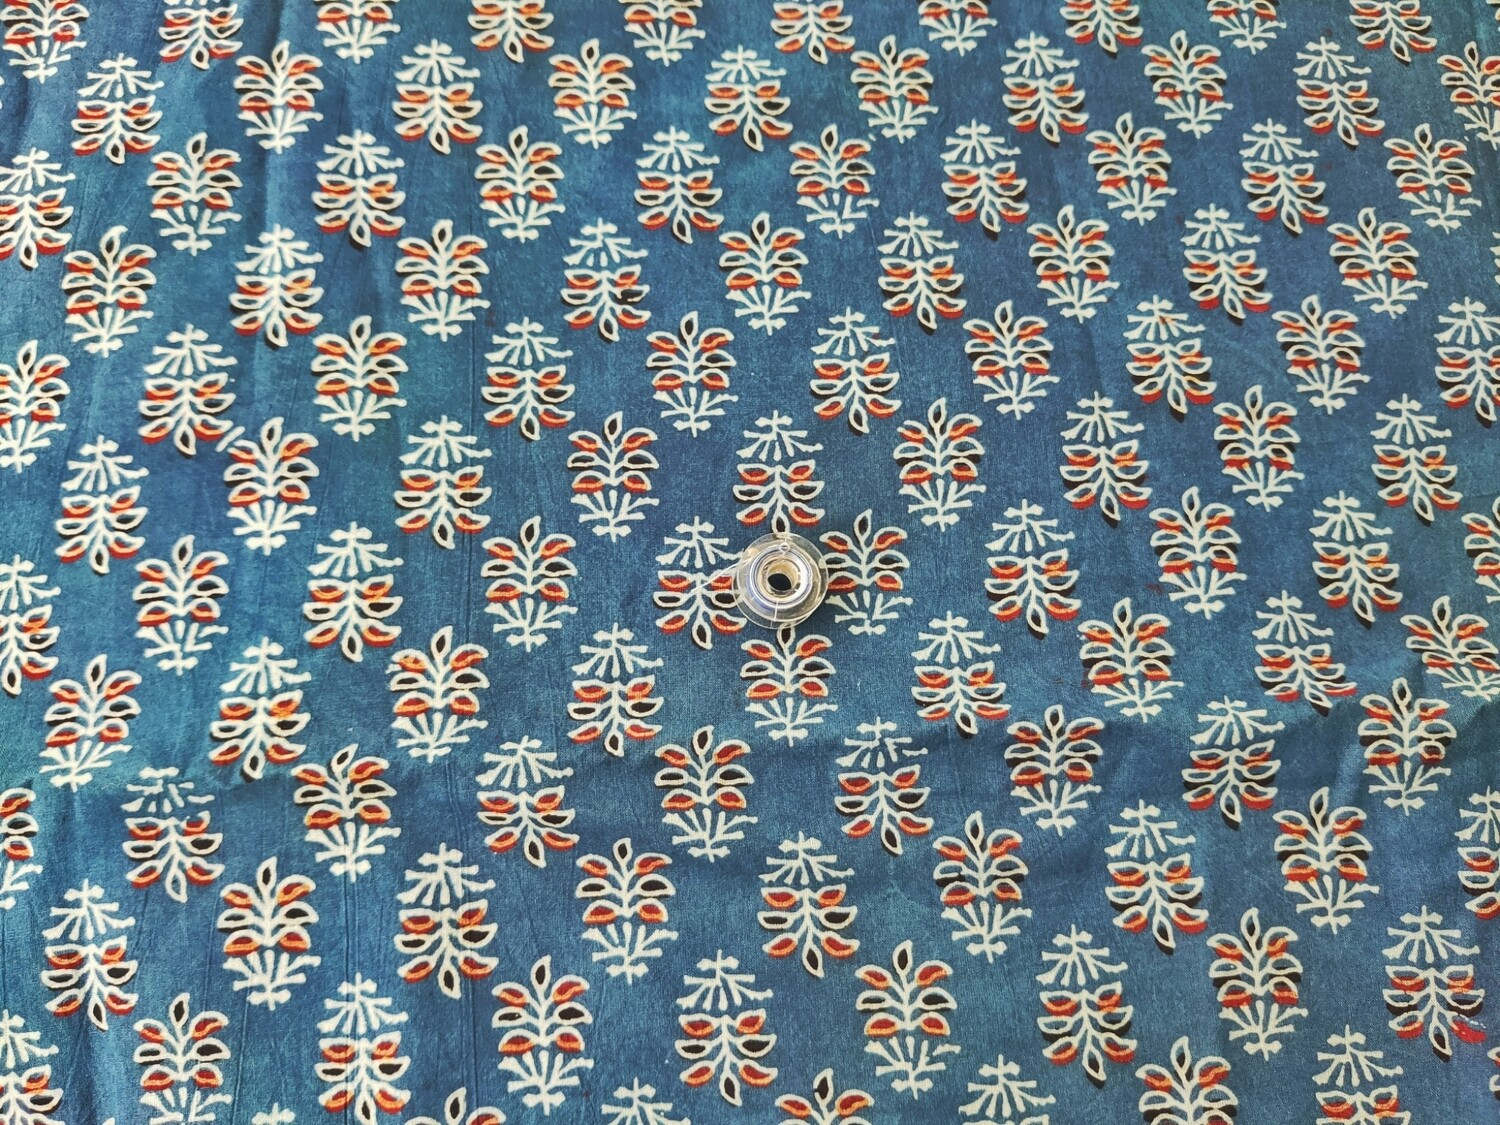 Indigo Ajrakh Block Print - Small Floral Cotton Fabric - Sold by Half Meter - 44 Inches Wide